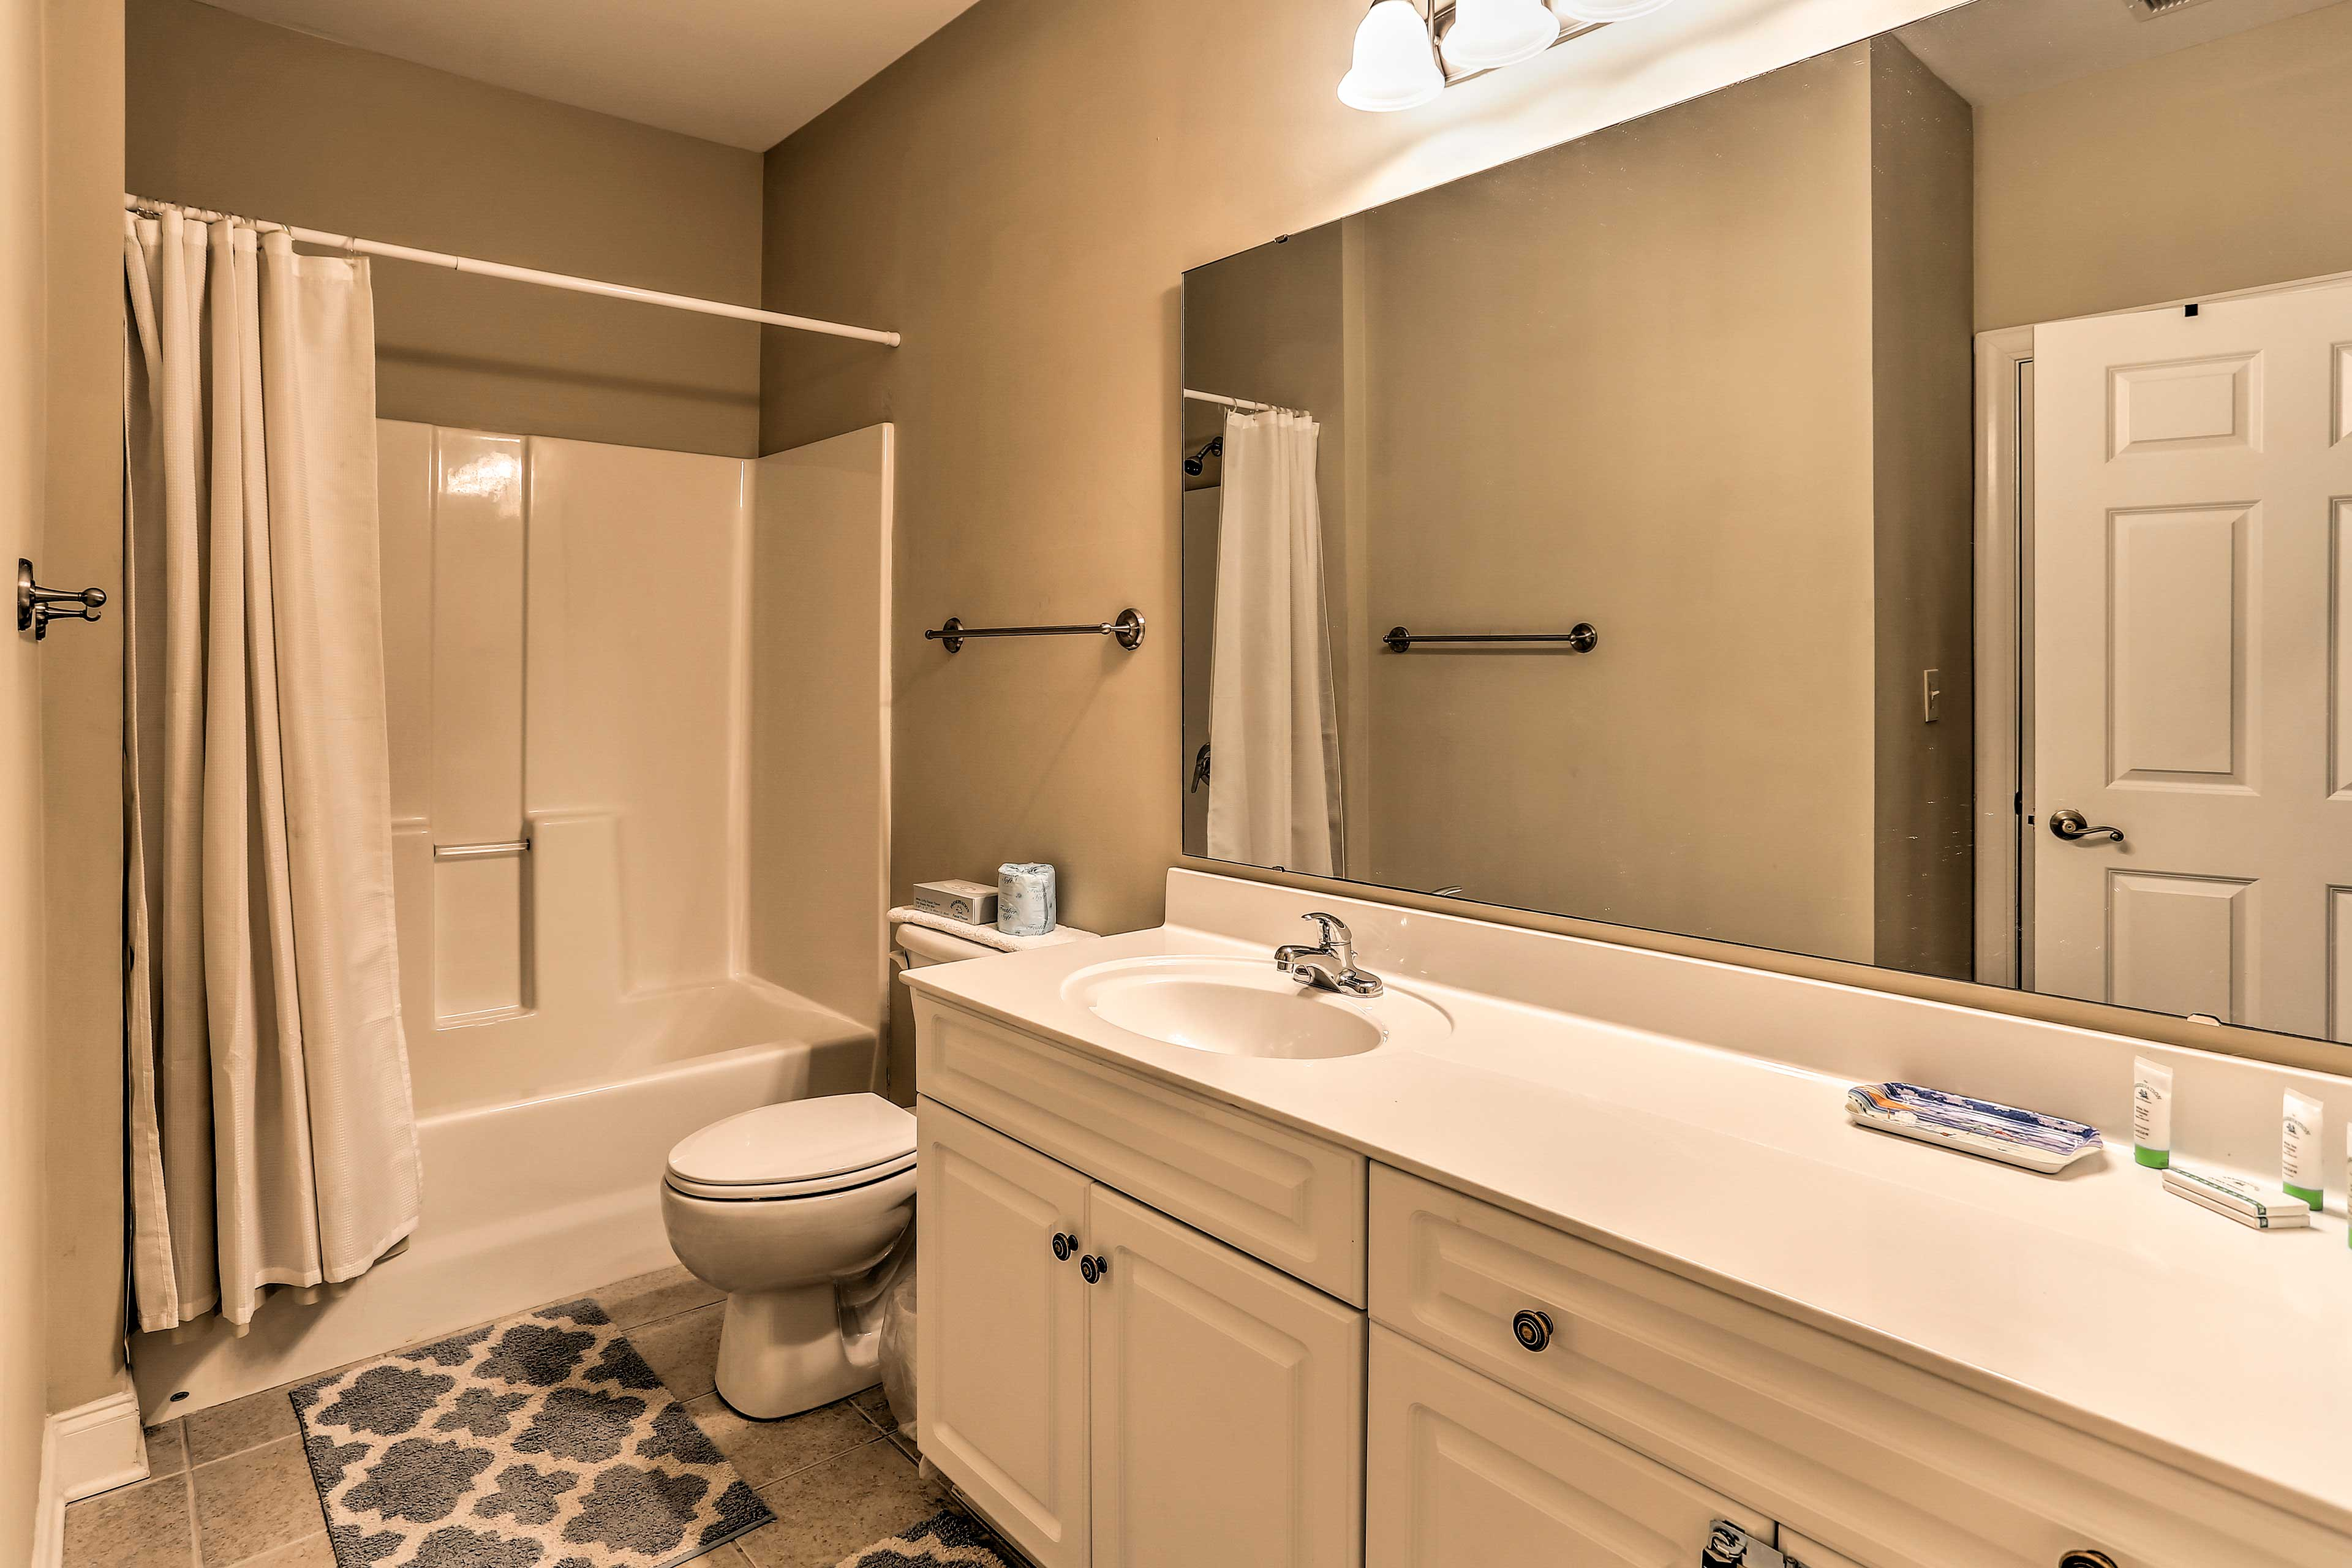 Freshen up in this full bathroom!